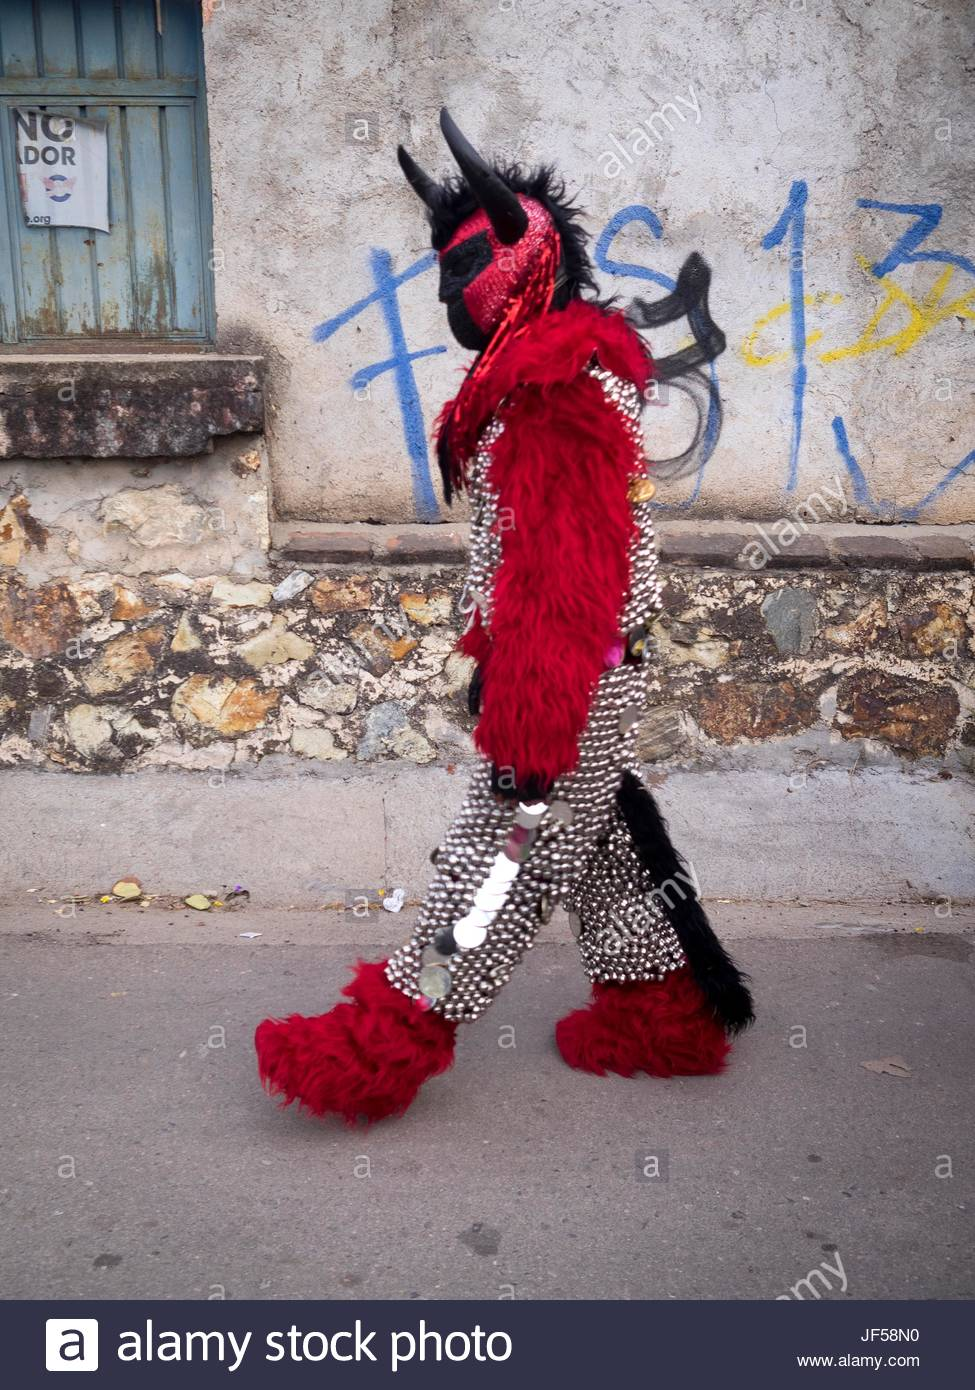 A person walks down a street wearing a devil costume for the Day of the Dead celebration. Stock Photo